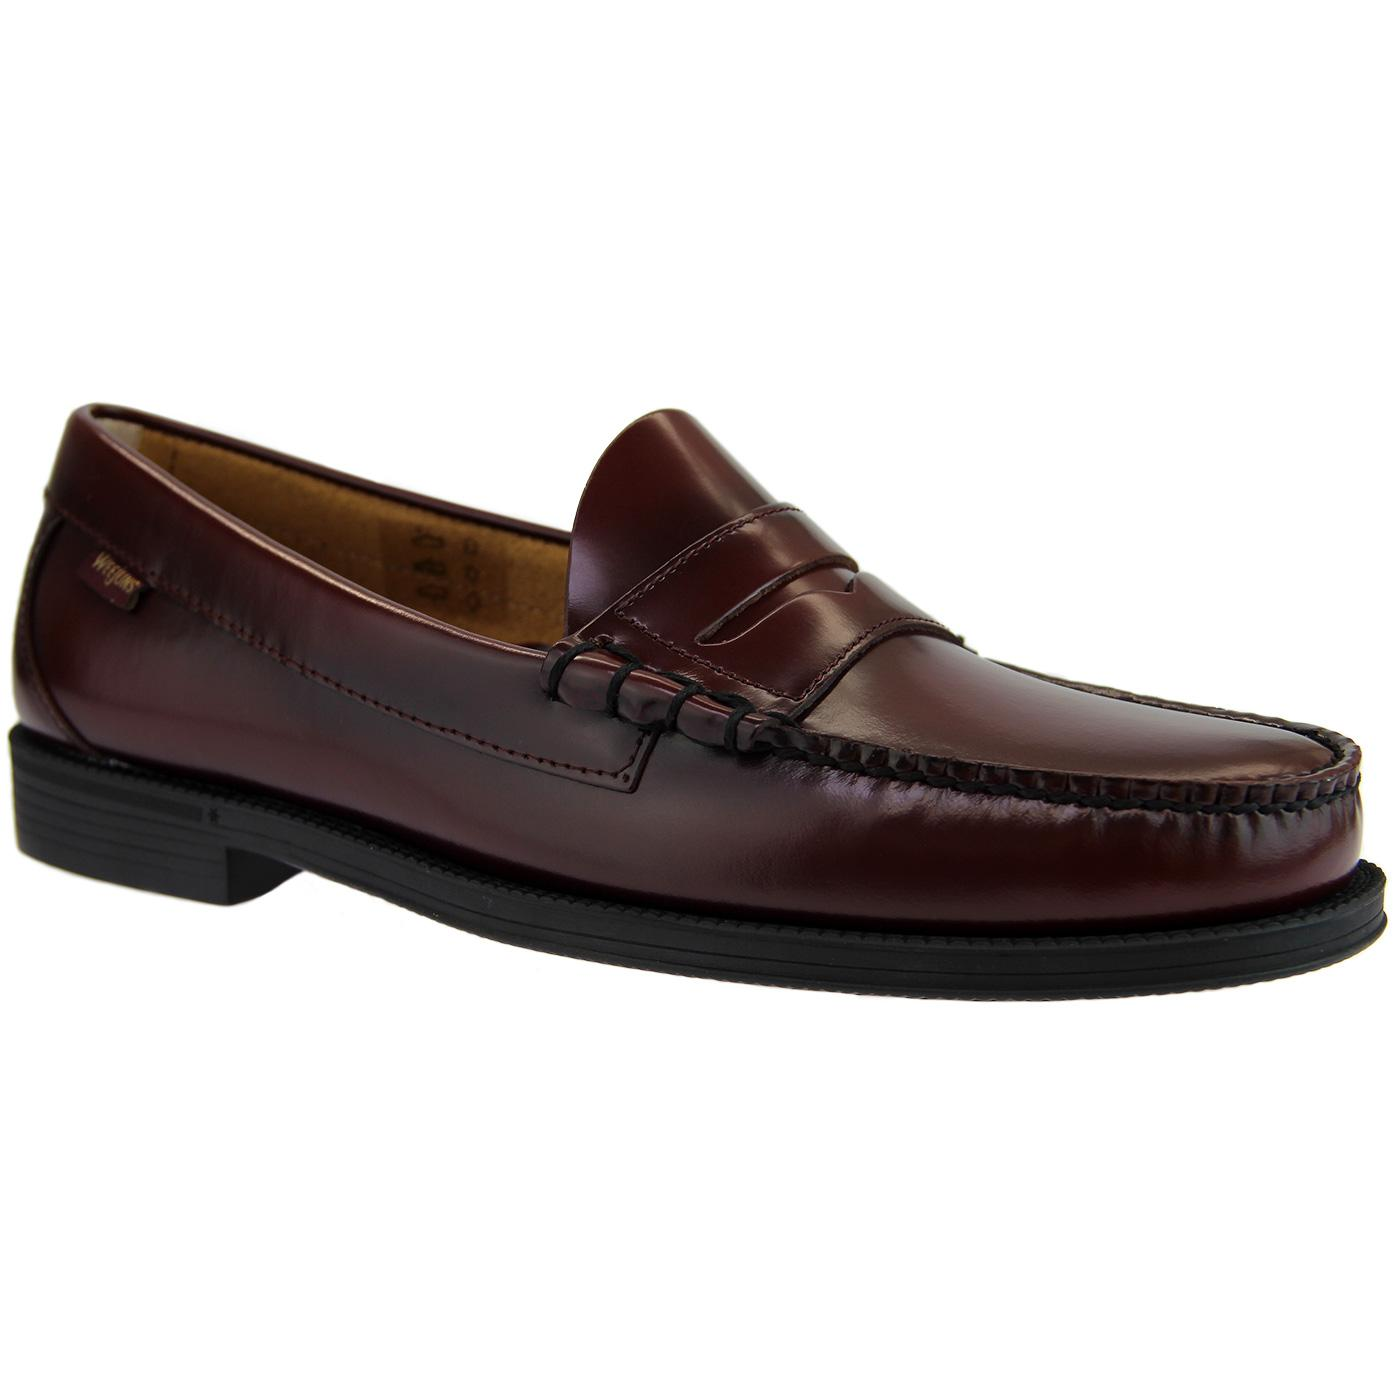 Larson Easy BASS WEEJUNS Mod 60's Penny Loafers W